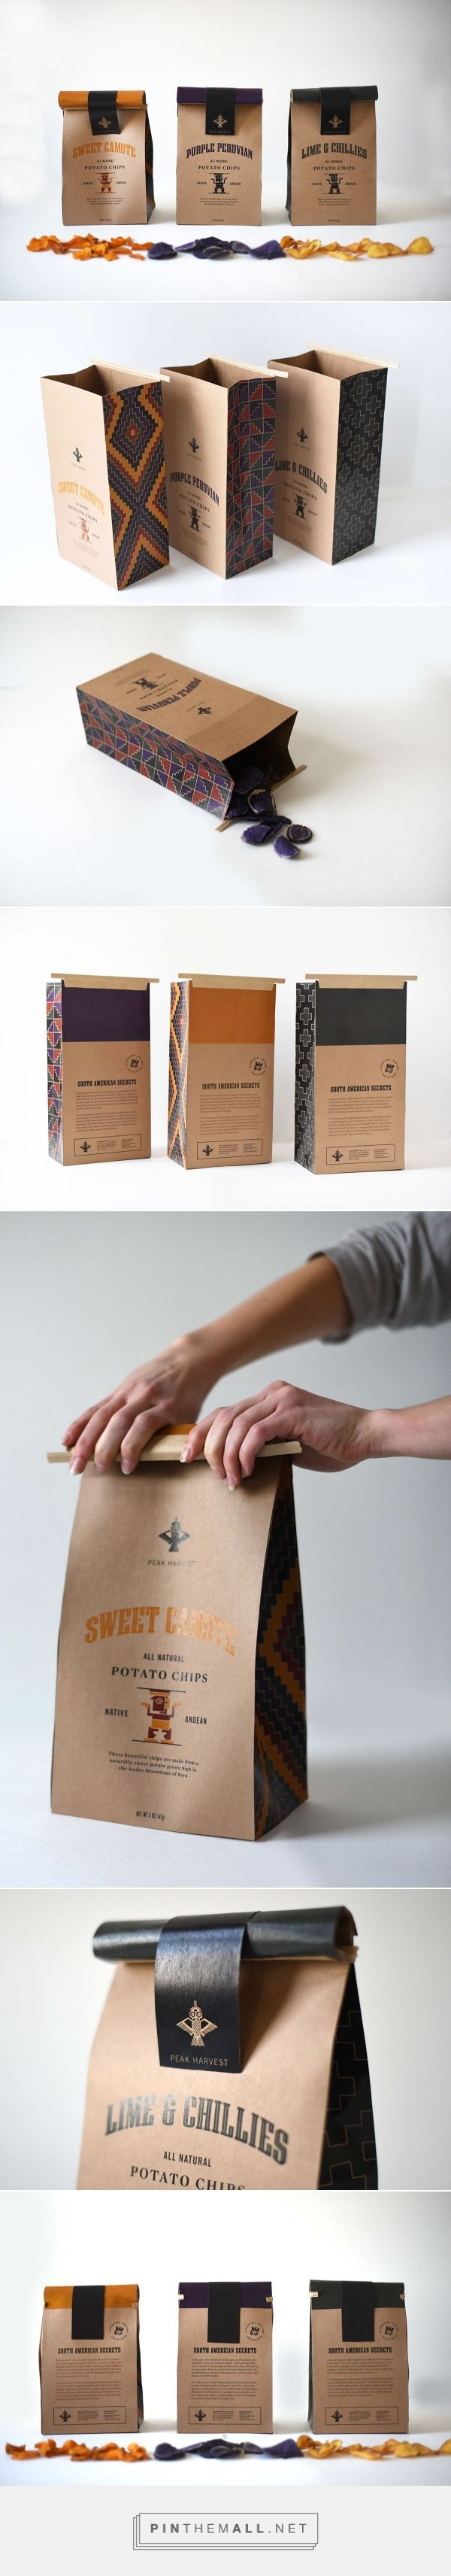 Branding, illustration and packaging for Potato Chips on Behance by Josie Mazsk Charleston, SC curated by Packaging Diva PD. Redesigned chip bags are made from 40% recycled natural kraft paper and lined with PLA, a renewable and compostable film made from corn. - designer evening bags, bags leather sale, small purse bag *sponsored https://www.pinterest.com/bags_bag/ https://www.pinterest.com/explore/bag/ https://www.pinterest.com/bags_bag/radley-bags/ http://www.zazzle.com/bags